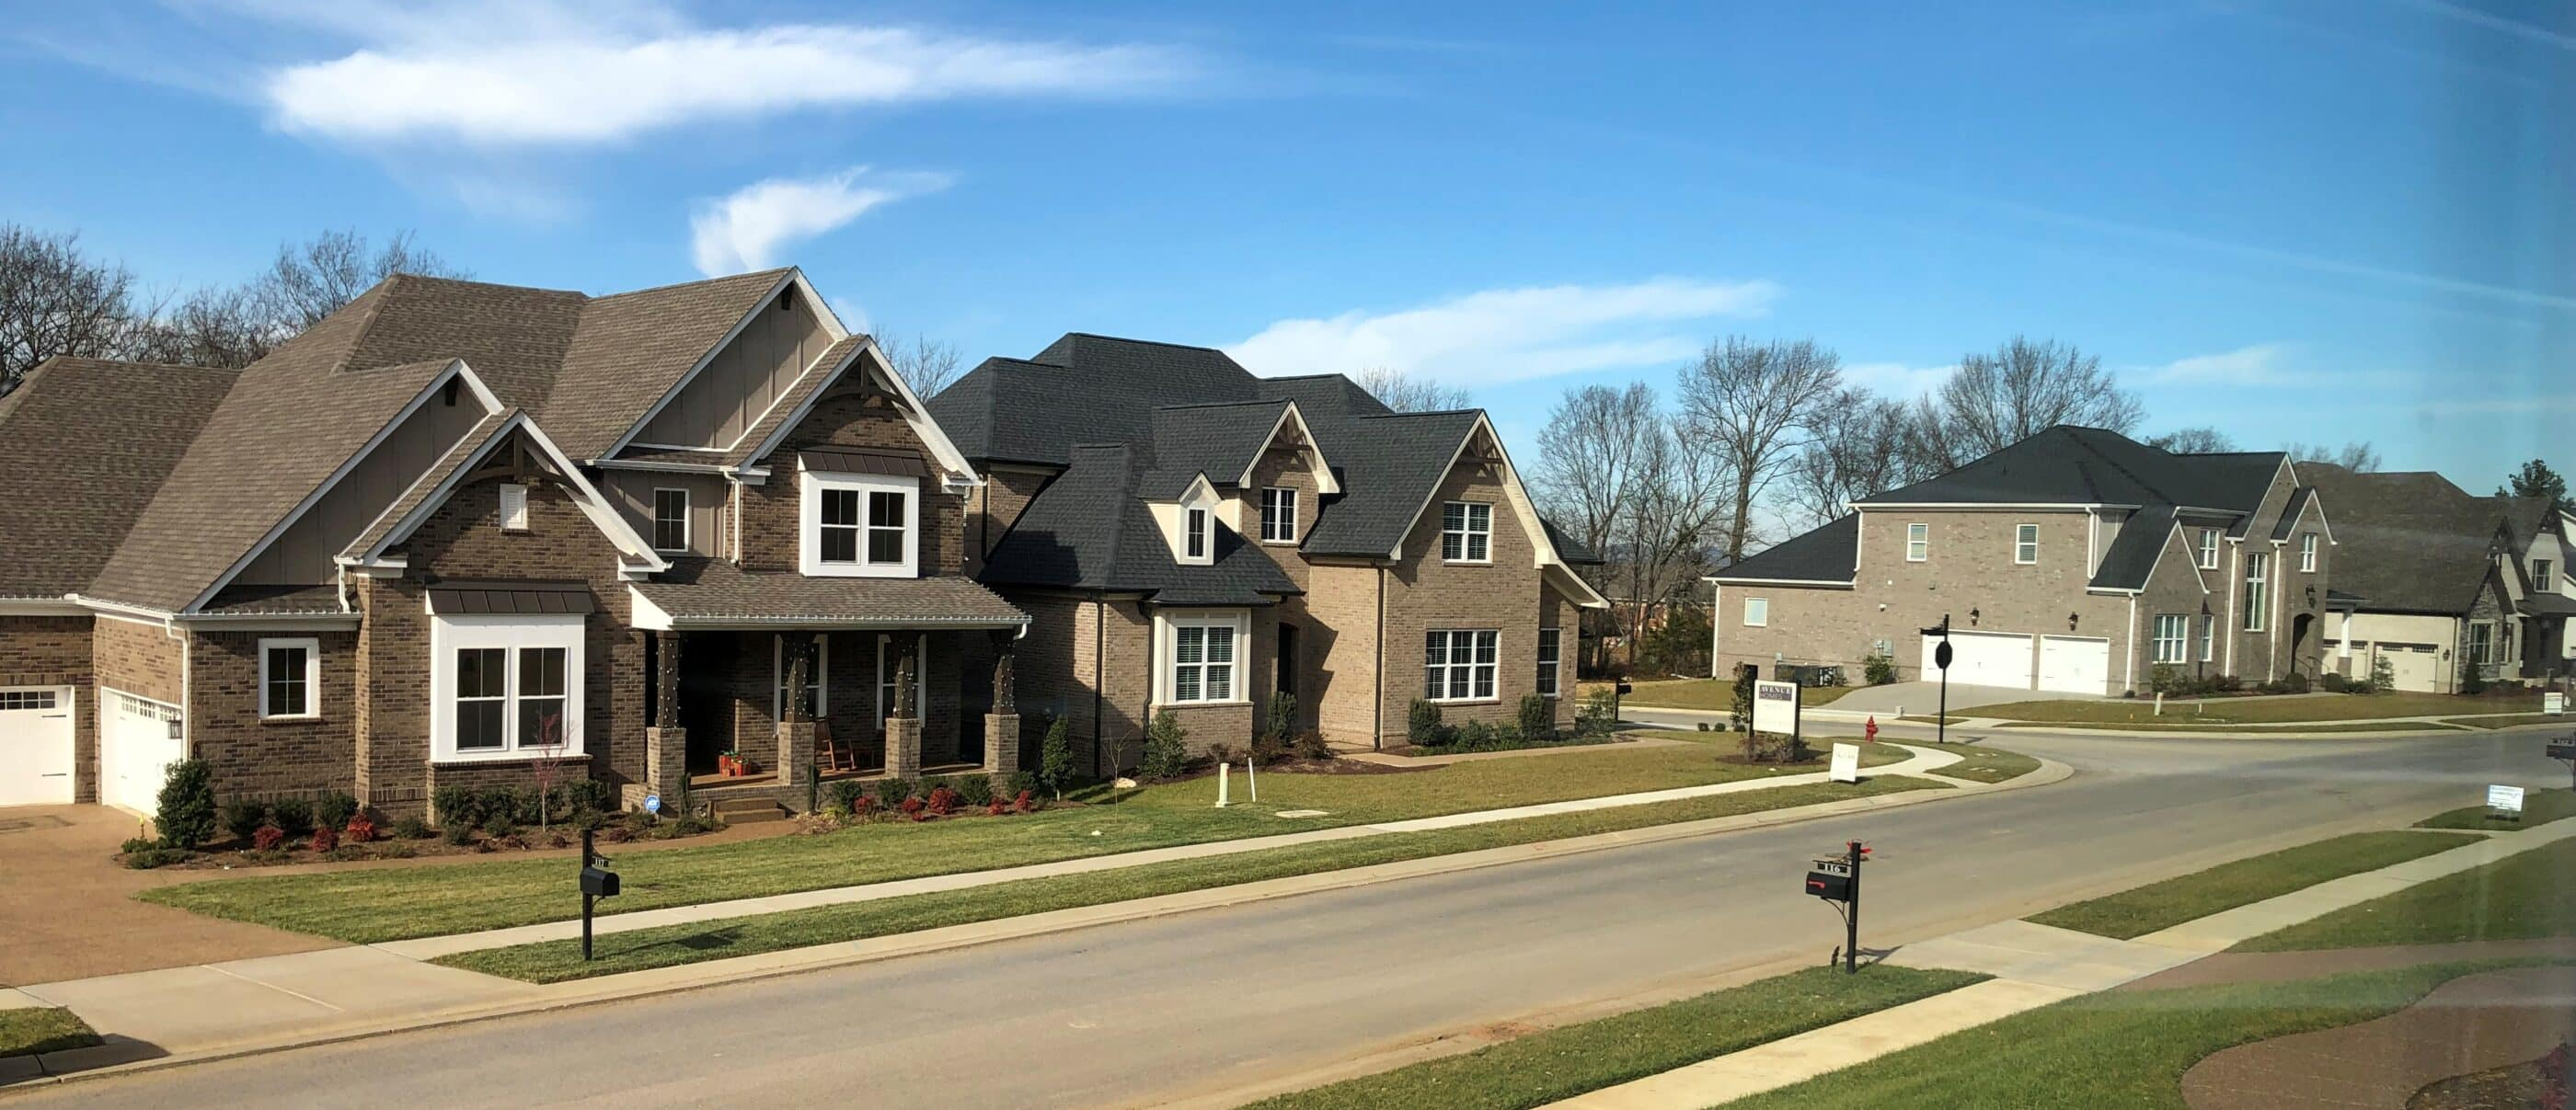 Nolensville tn new construction real estate